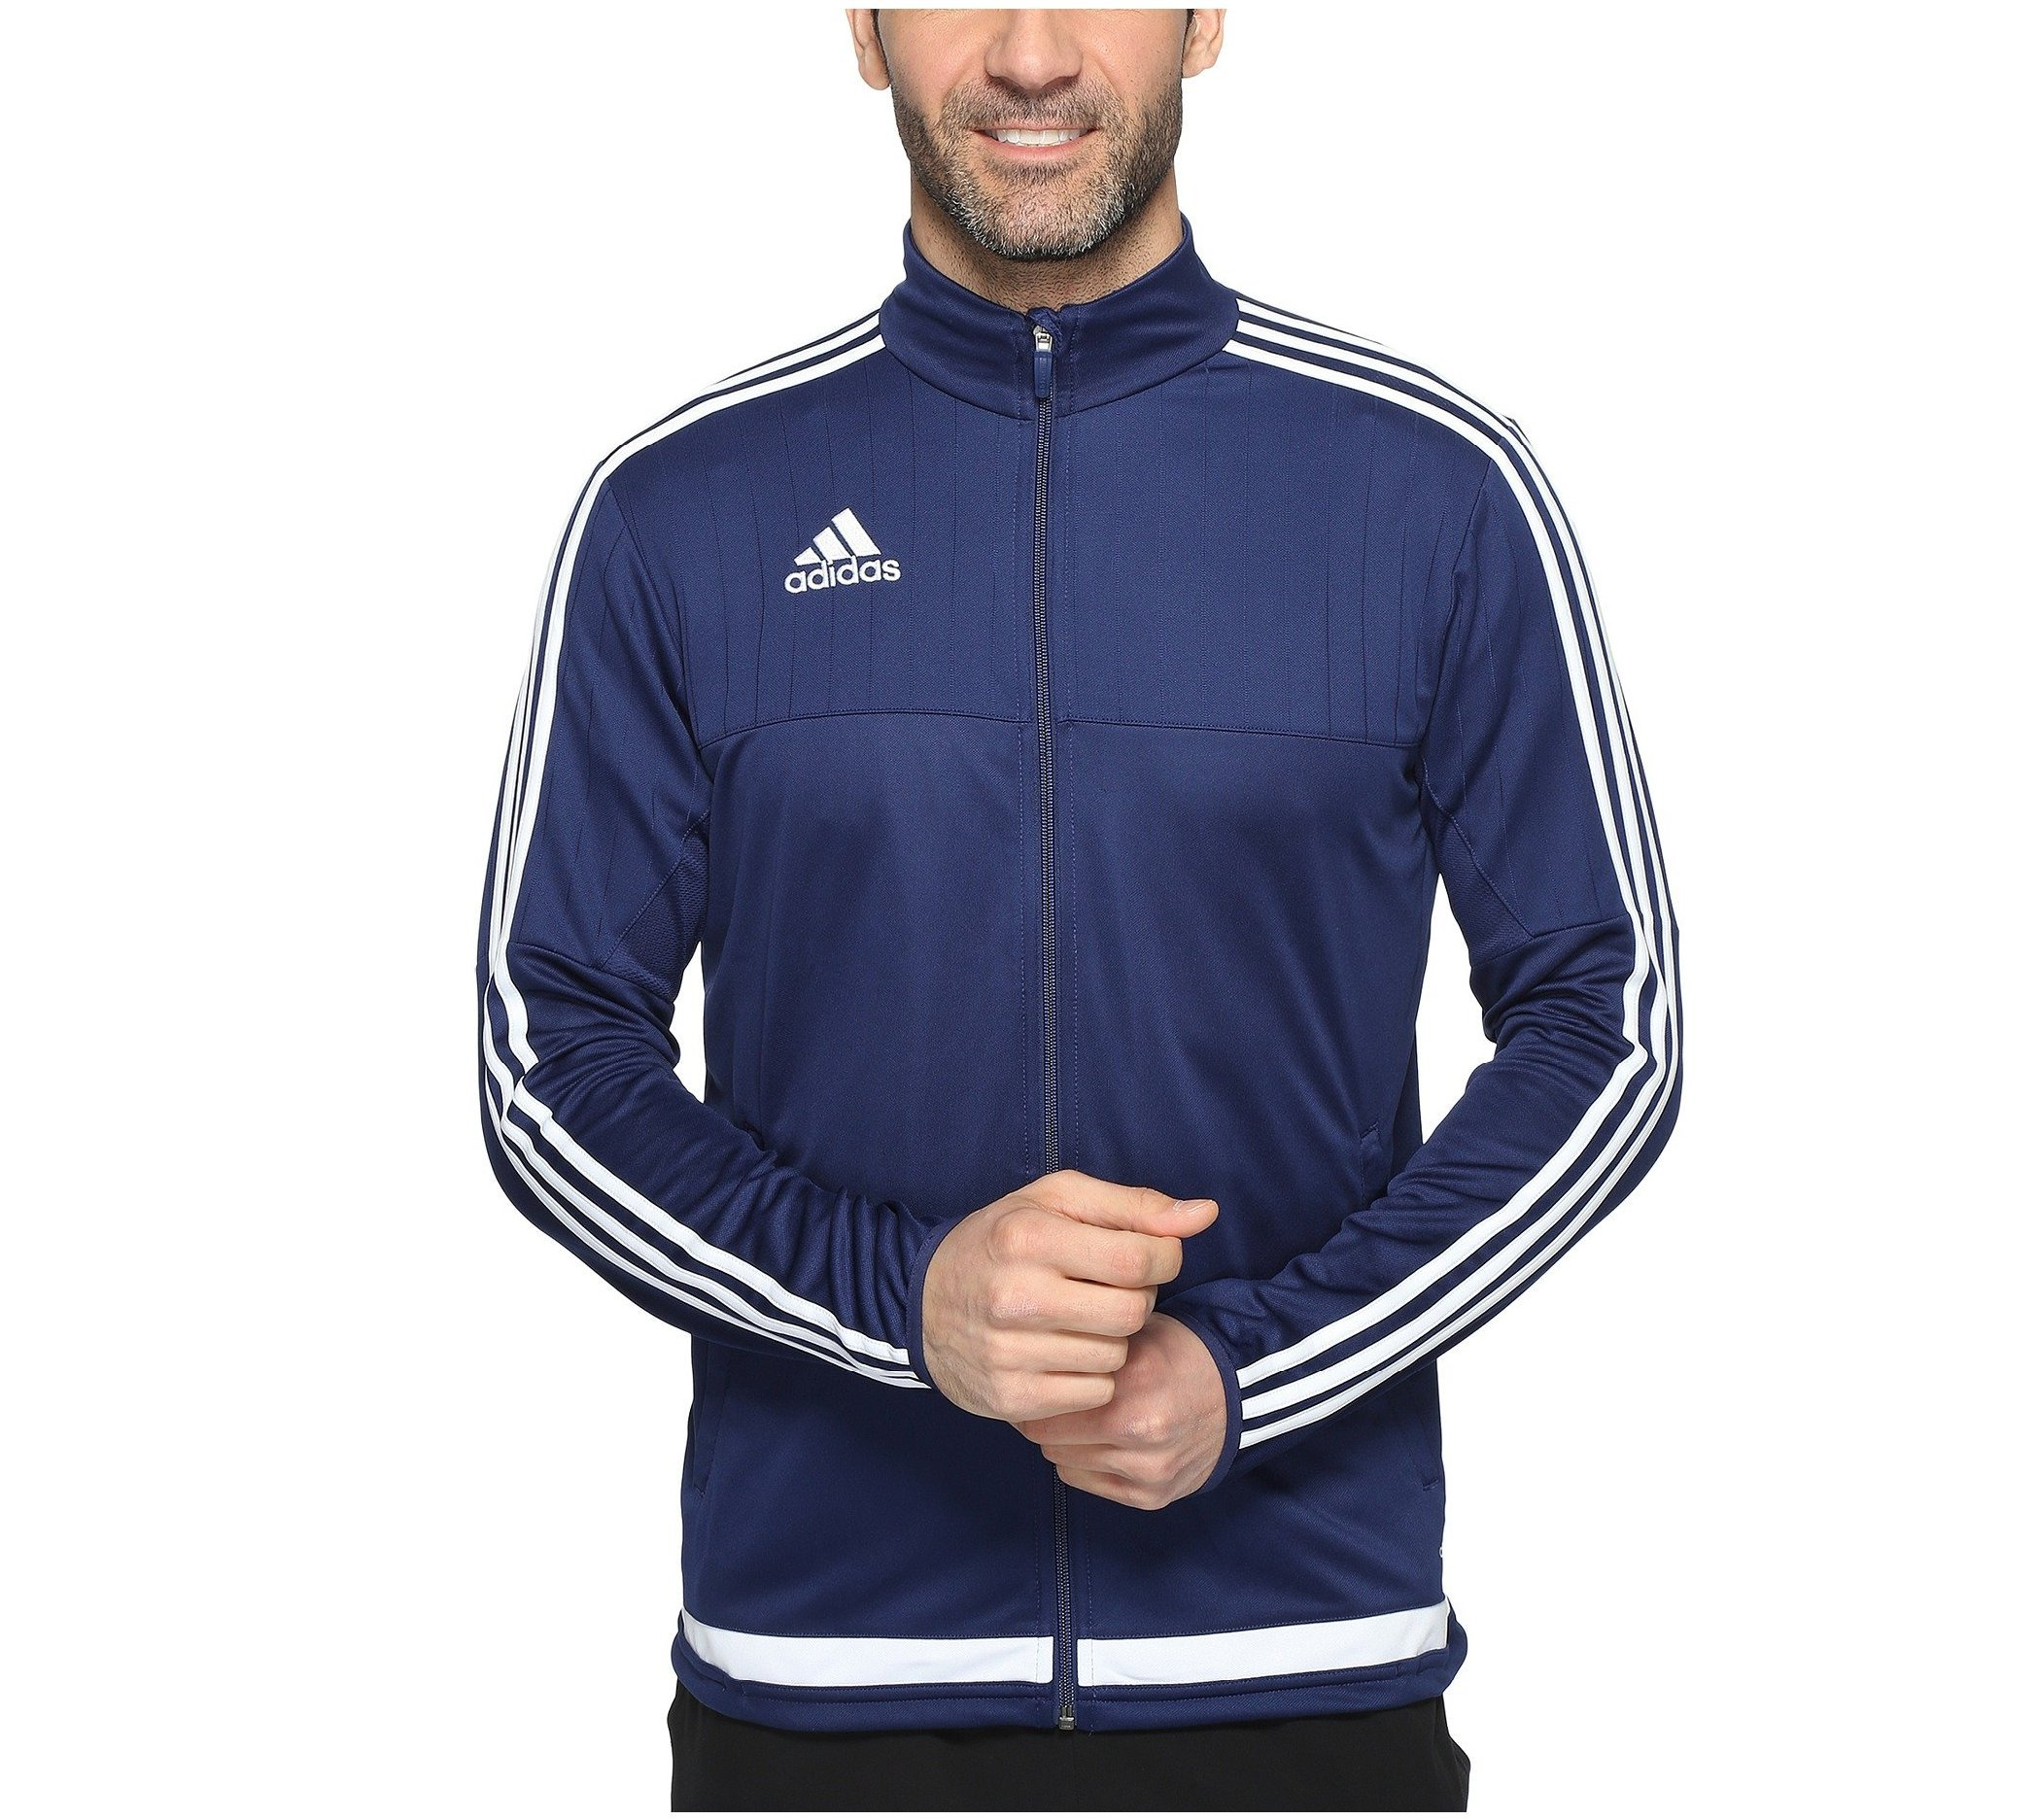 adidas Men's Soccer Tiro 15 Training Jacket, Dark Blue/White/Dark Blue, Large by adidas